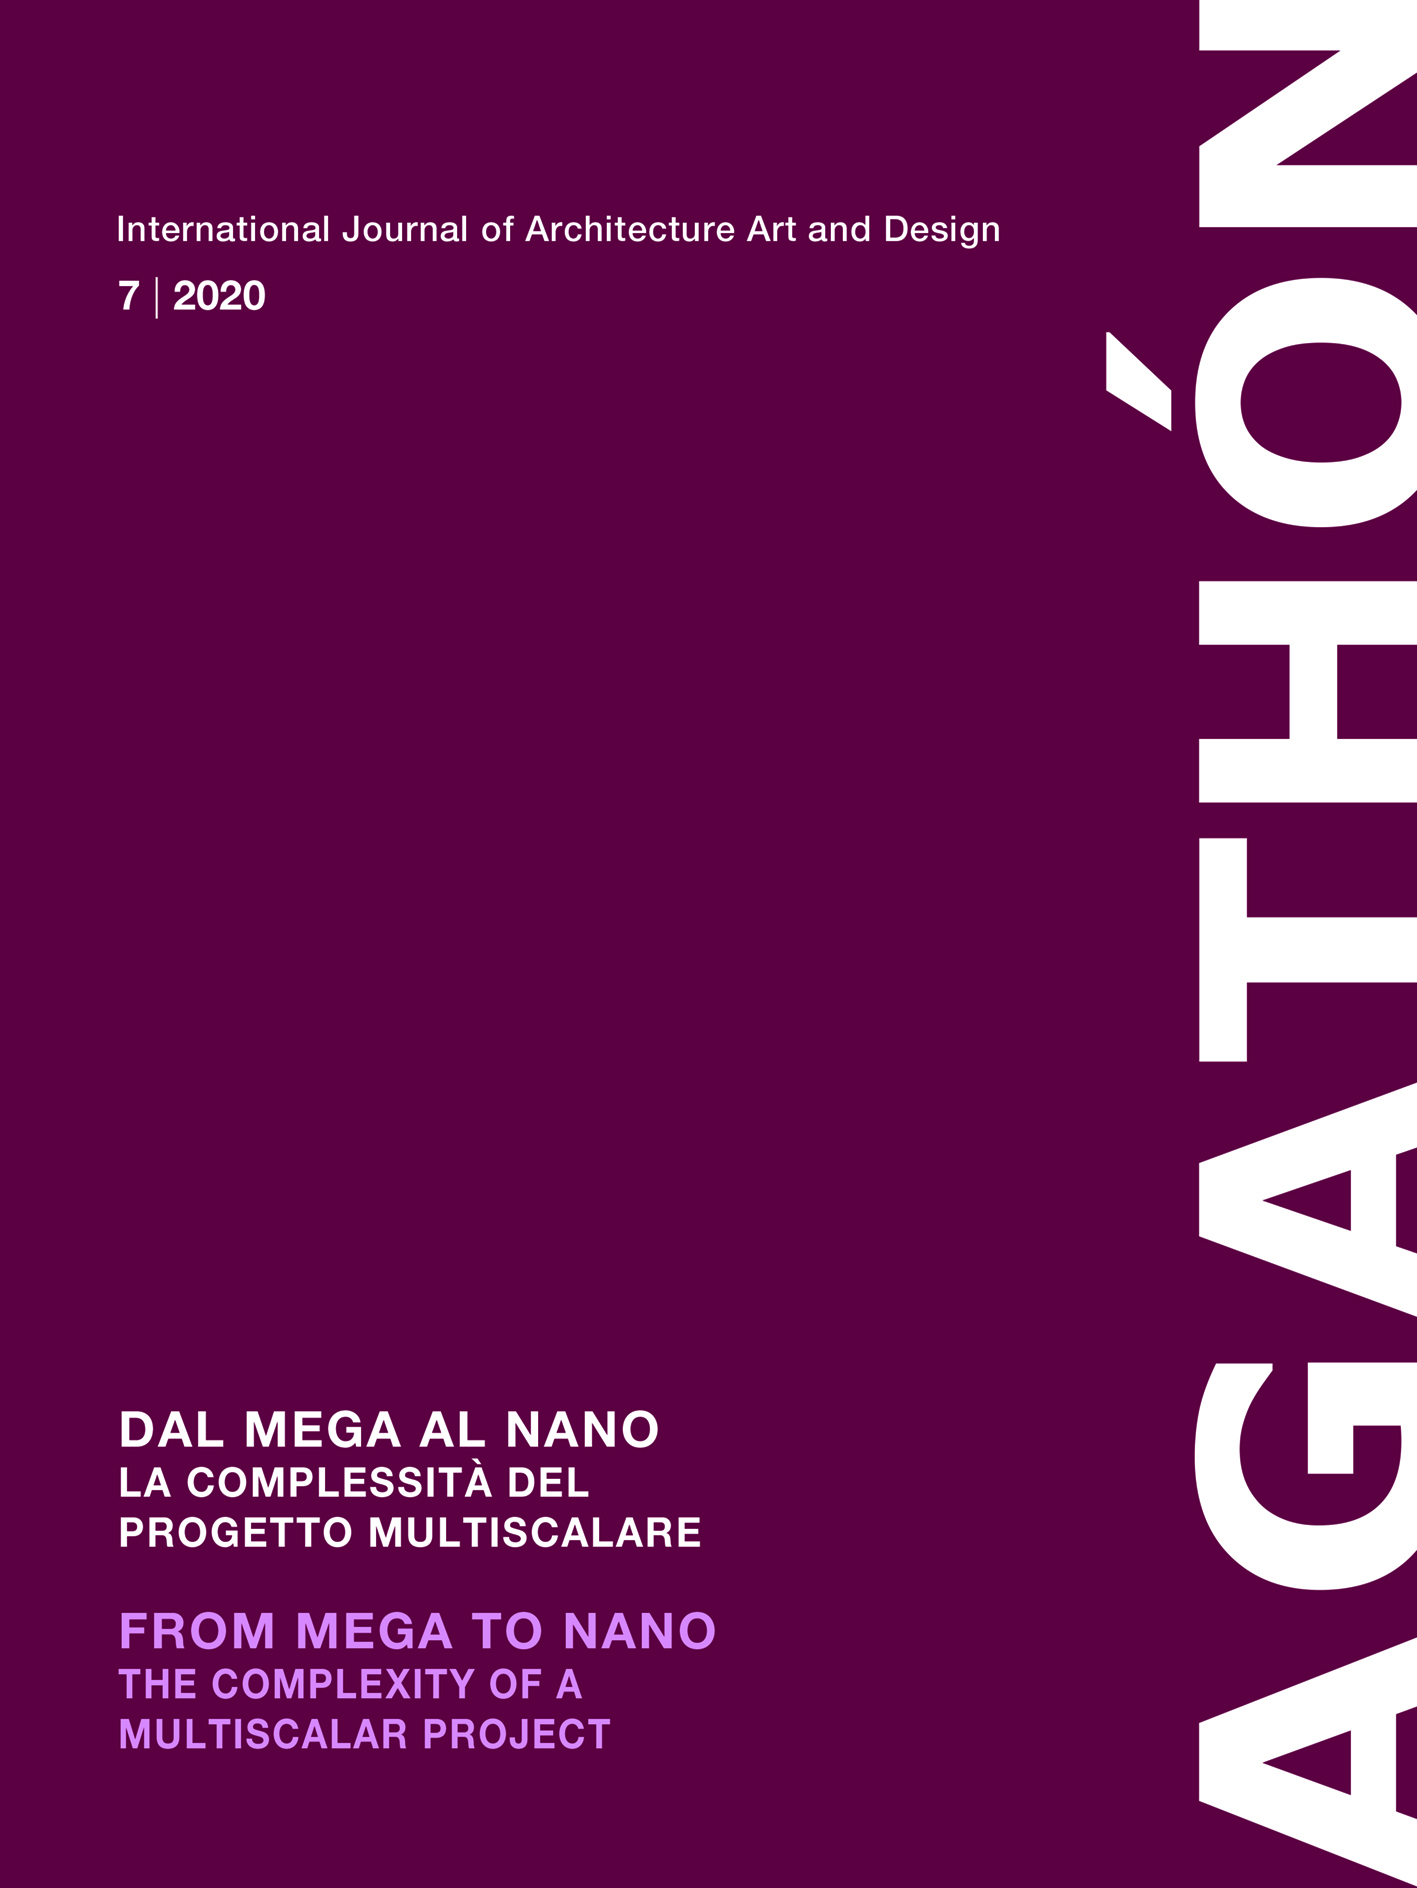 FROM MEGA TO NANO | THE COMPLEXITY OF A MULTSCALAR PROJECT – DAL MEGA AL NANO | LA COMPLESSITÀ DEL PROGETTO MULTISCALARE | AGATHÓN 7 | 2020